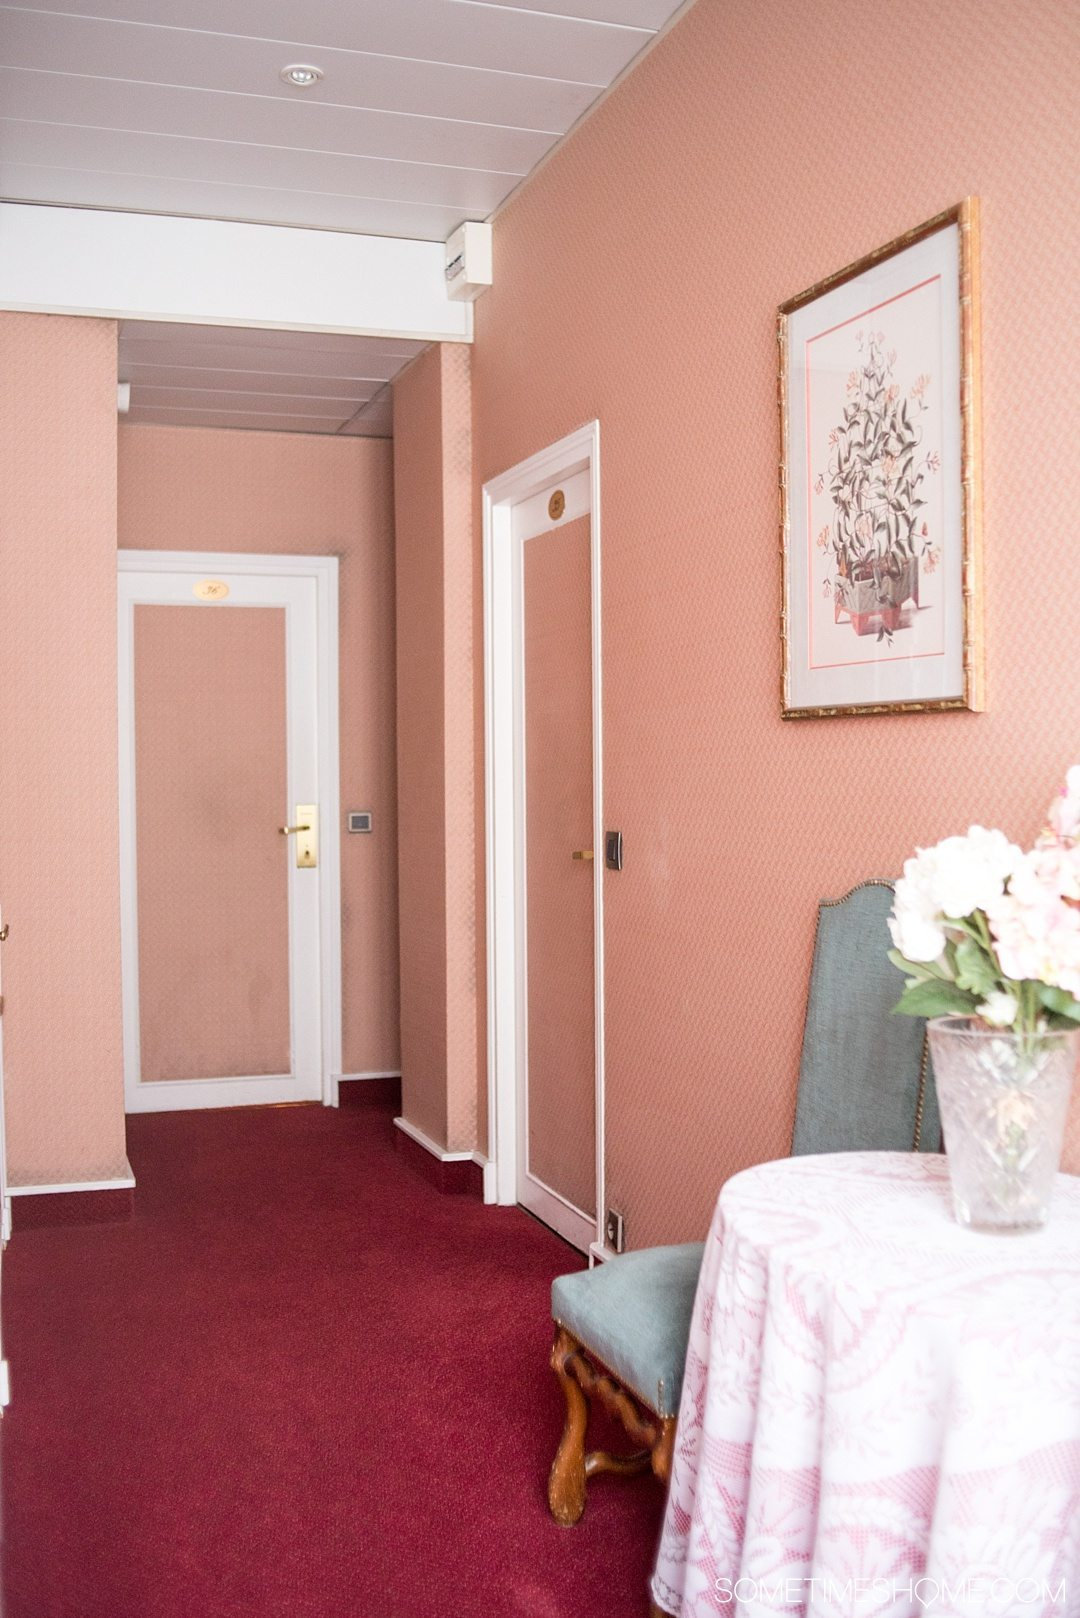 Paris hotel suite accommodation with very affordable rooms in the historic Le Marais district. Click through to the article for a complete review!